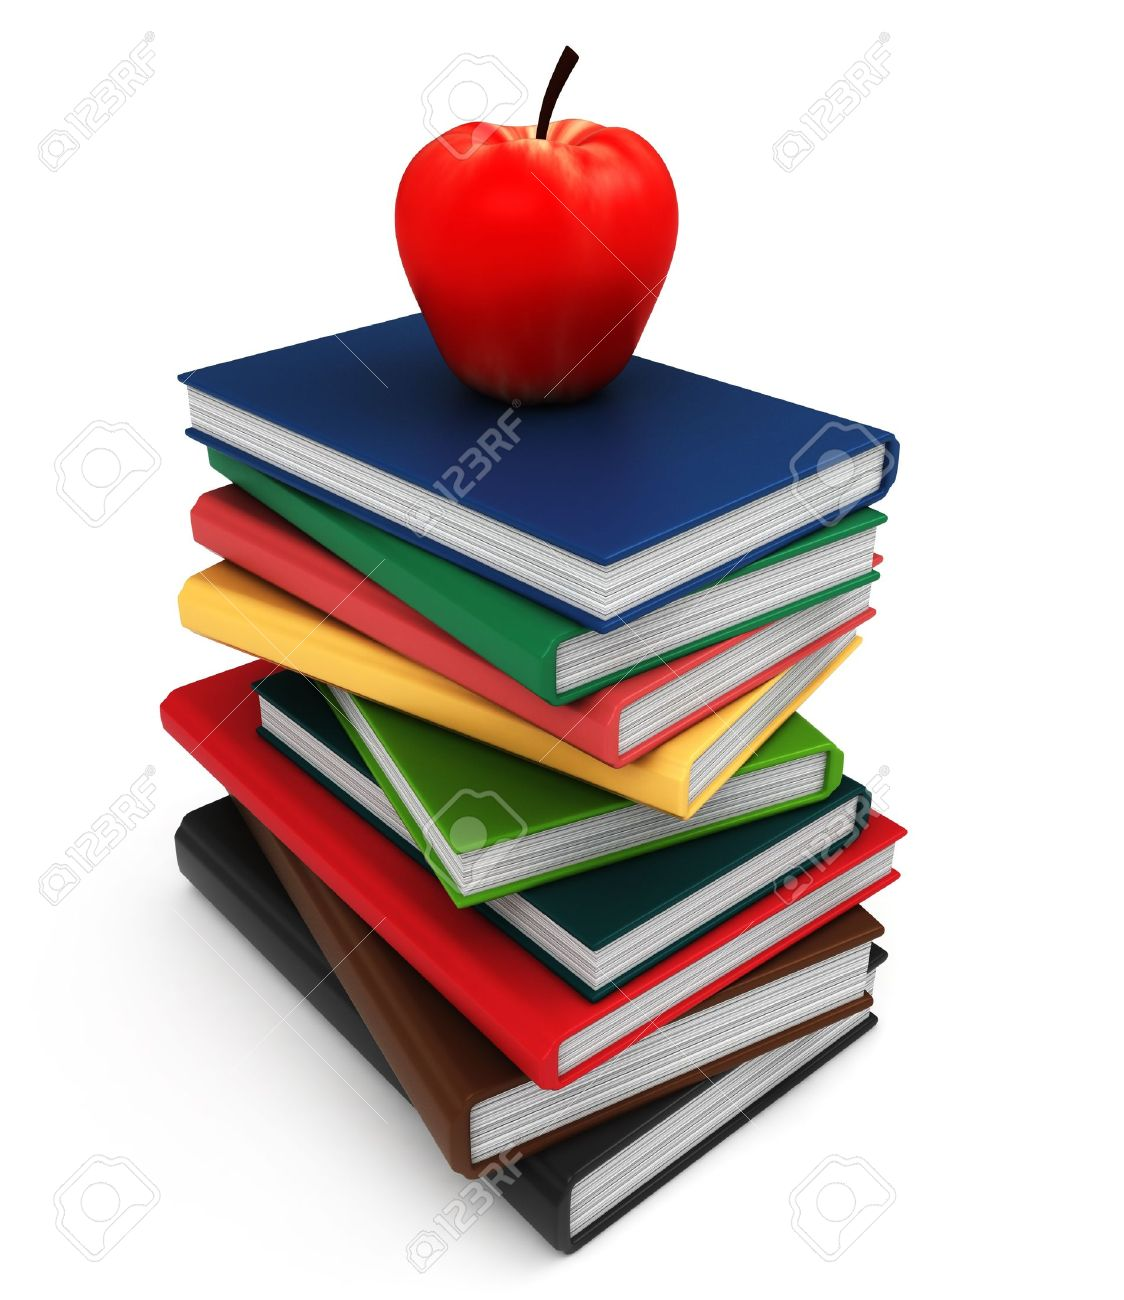 3d illustration of a pile of books with an apple on top stock photo